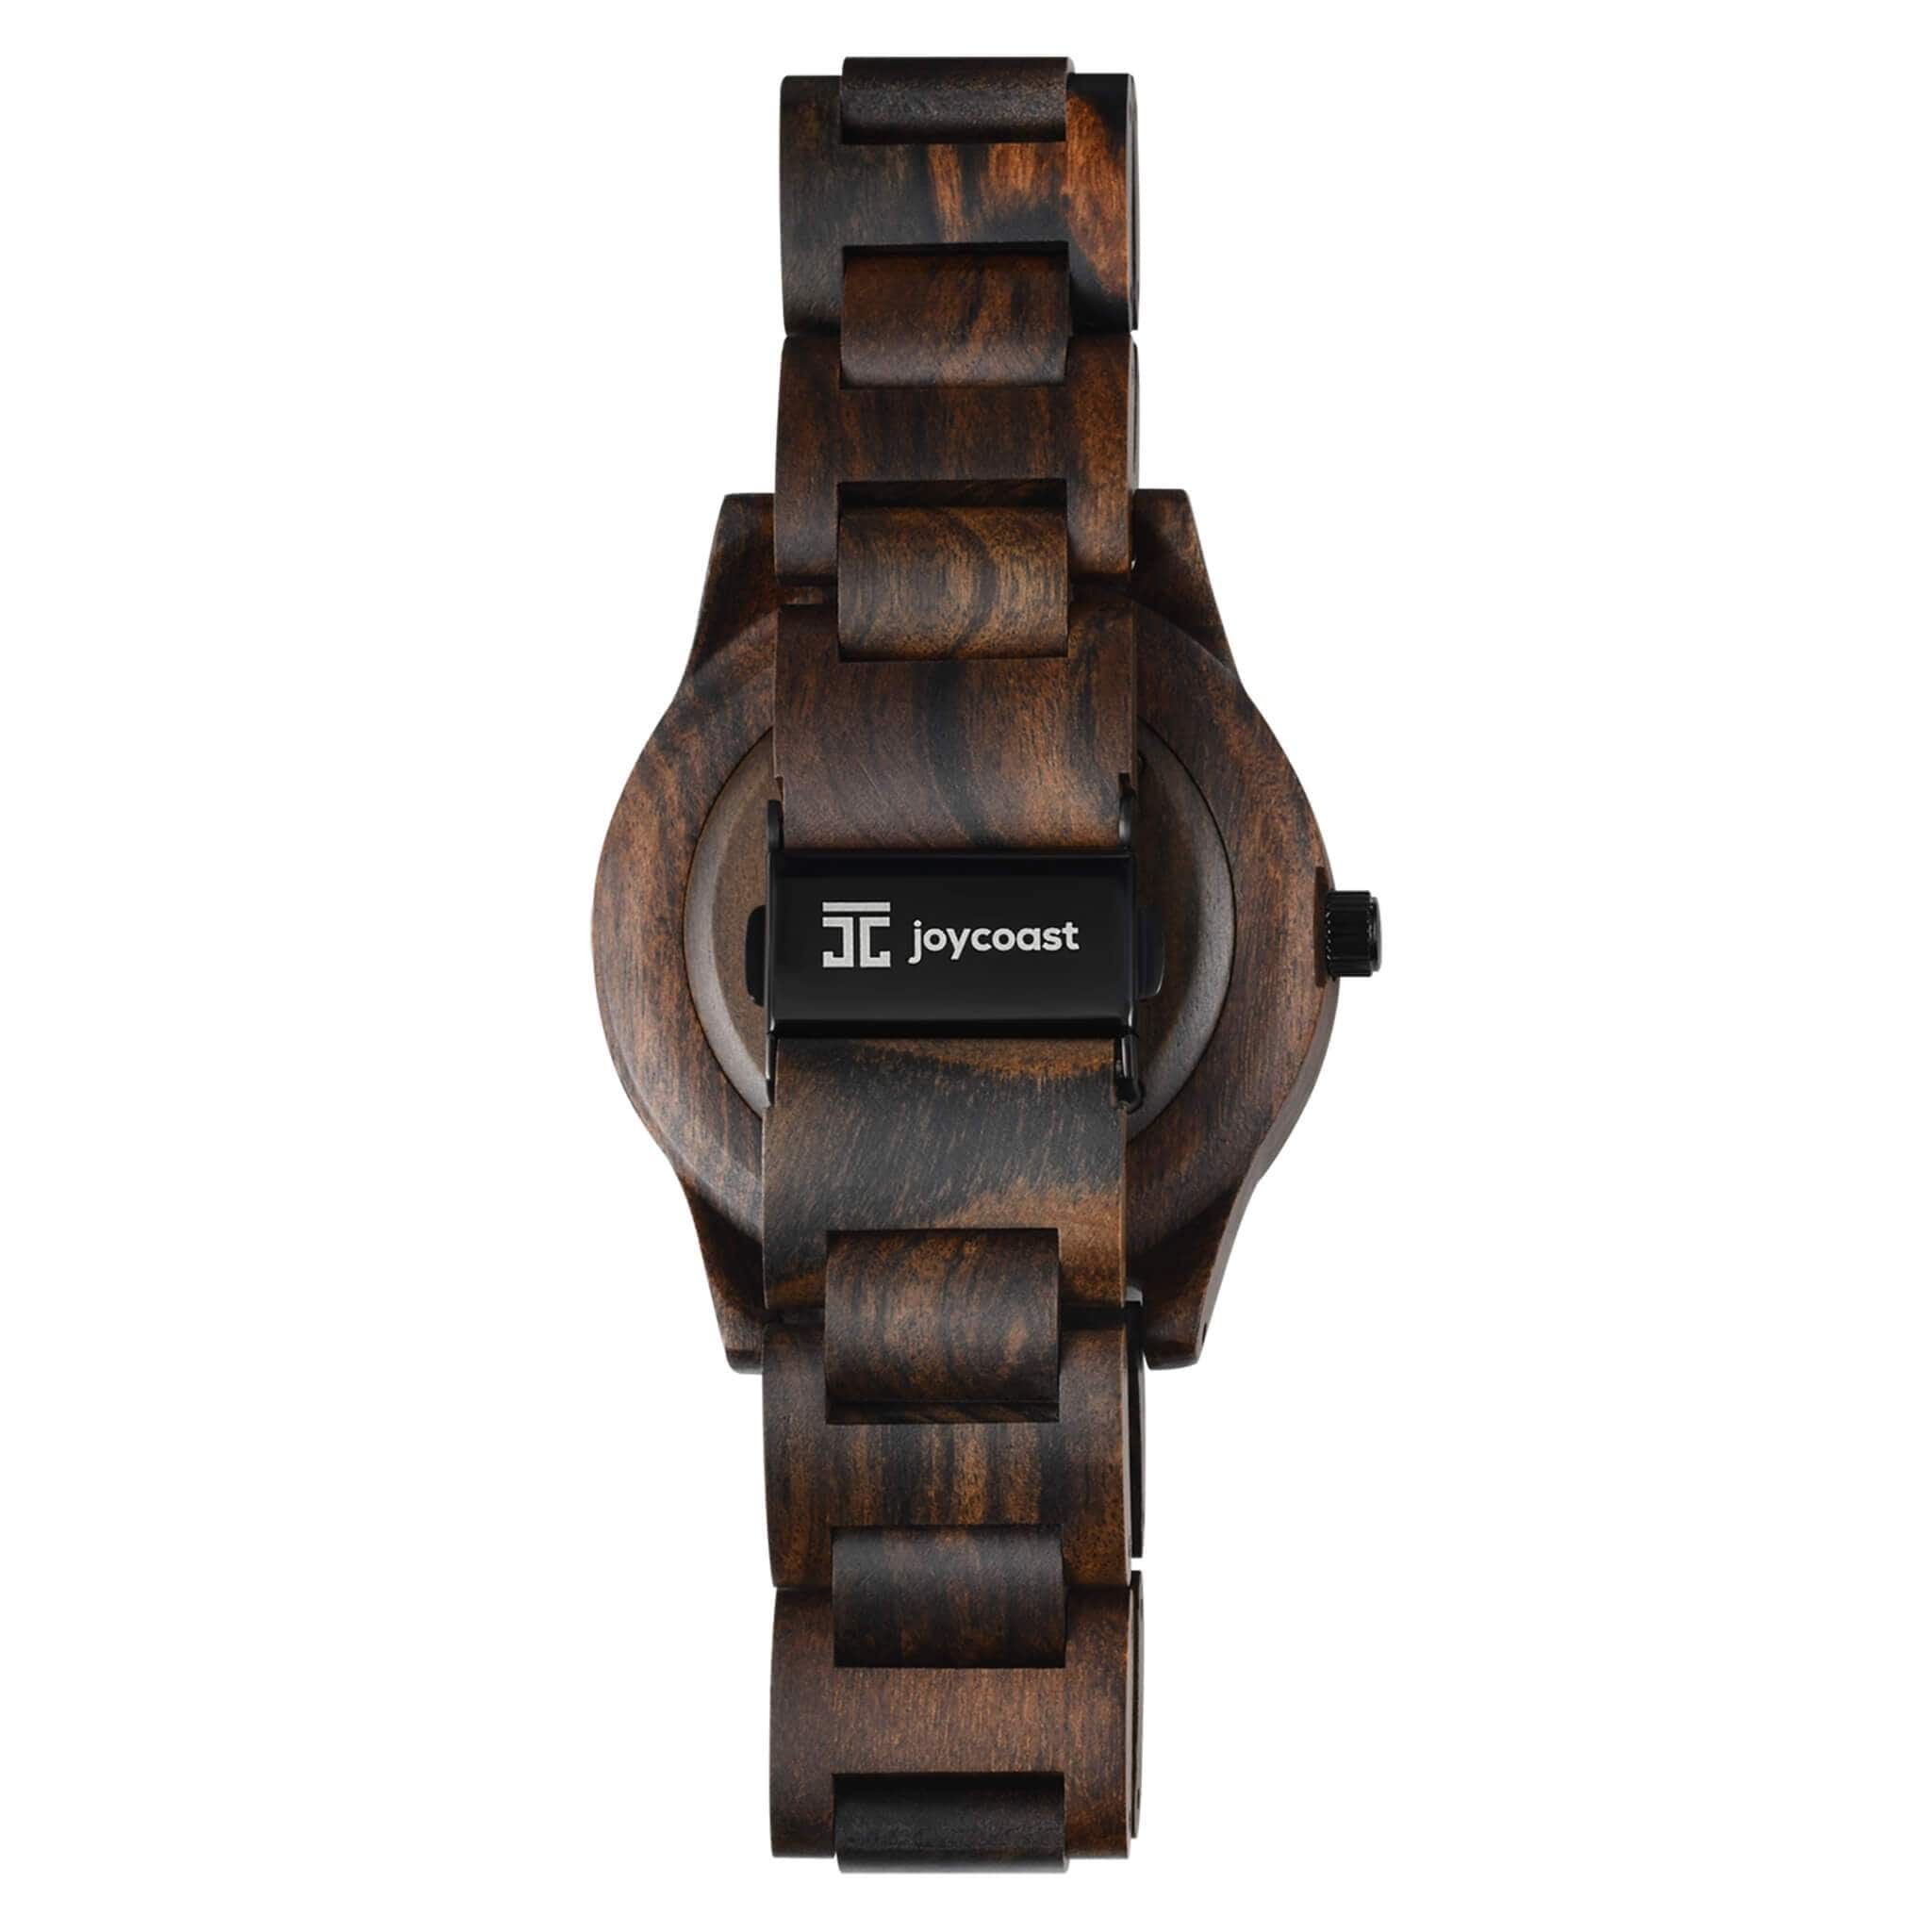 White Rose - Wooden Watches and Sunglasses - Joycoast